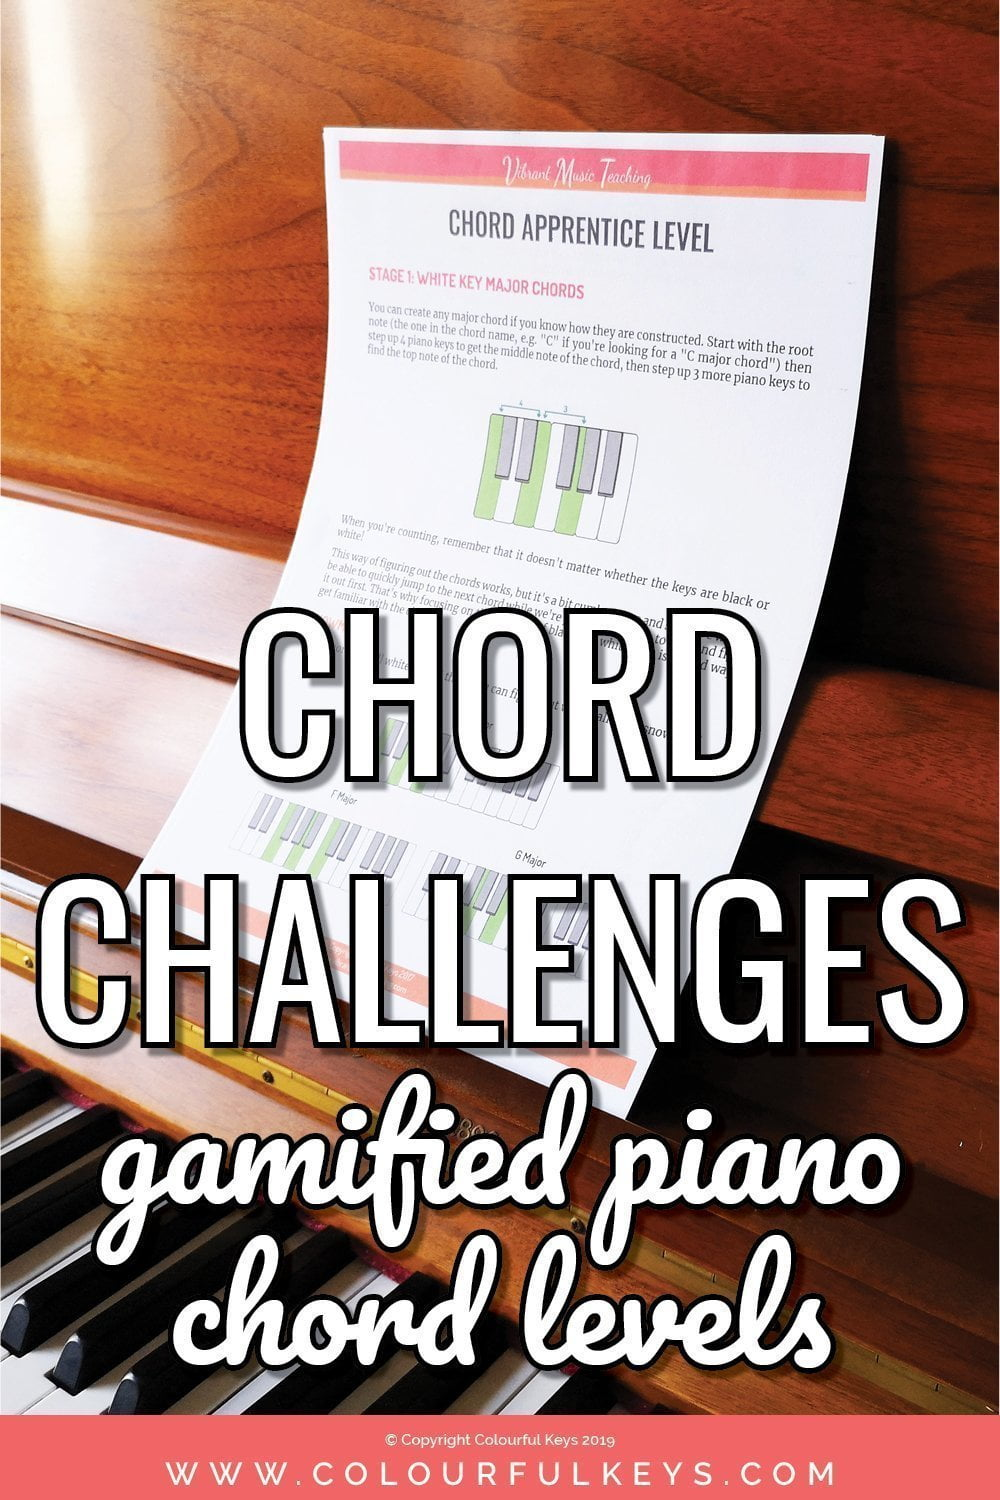 How to teach piano chords - with a free booklet to help you level-up your chord teaching!